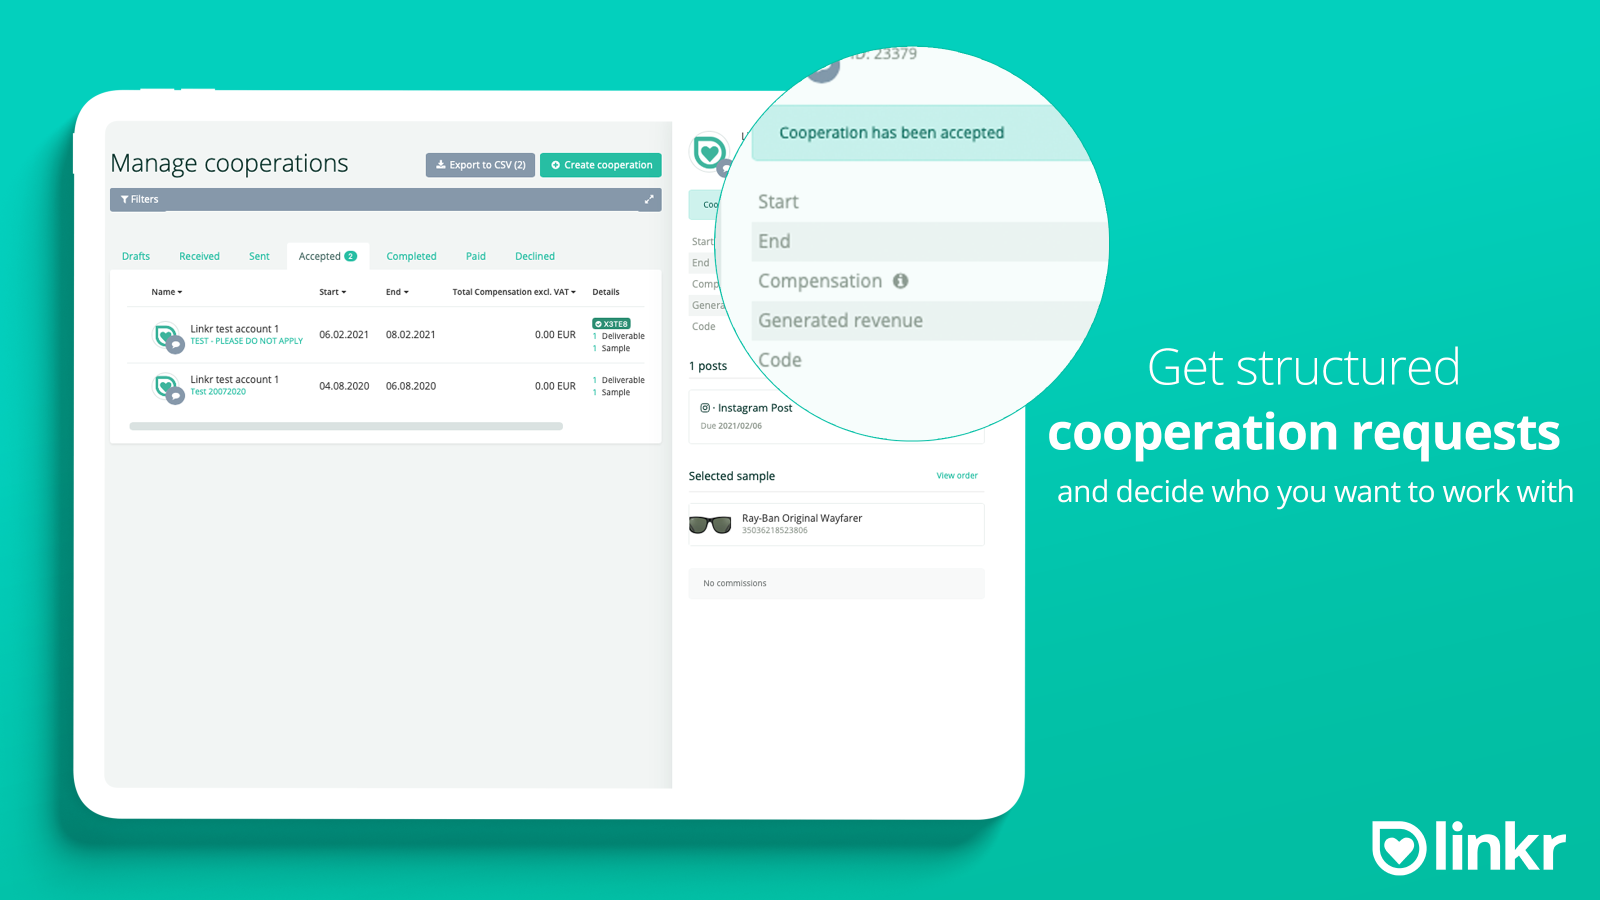 Manage Cooperations